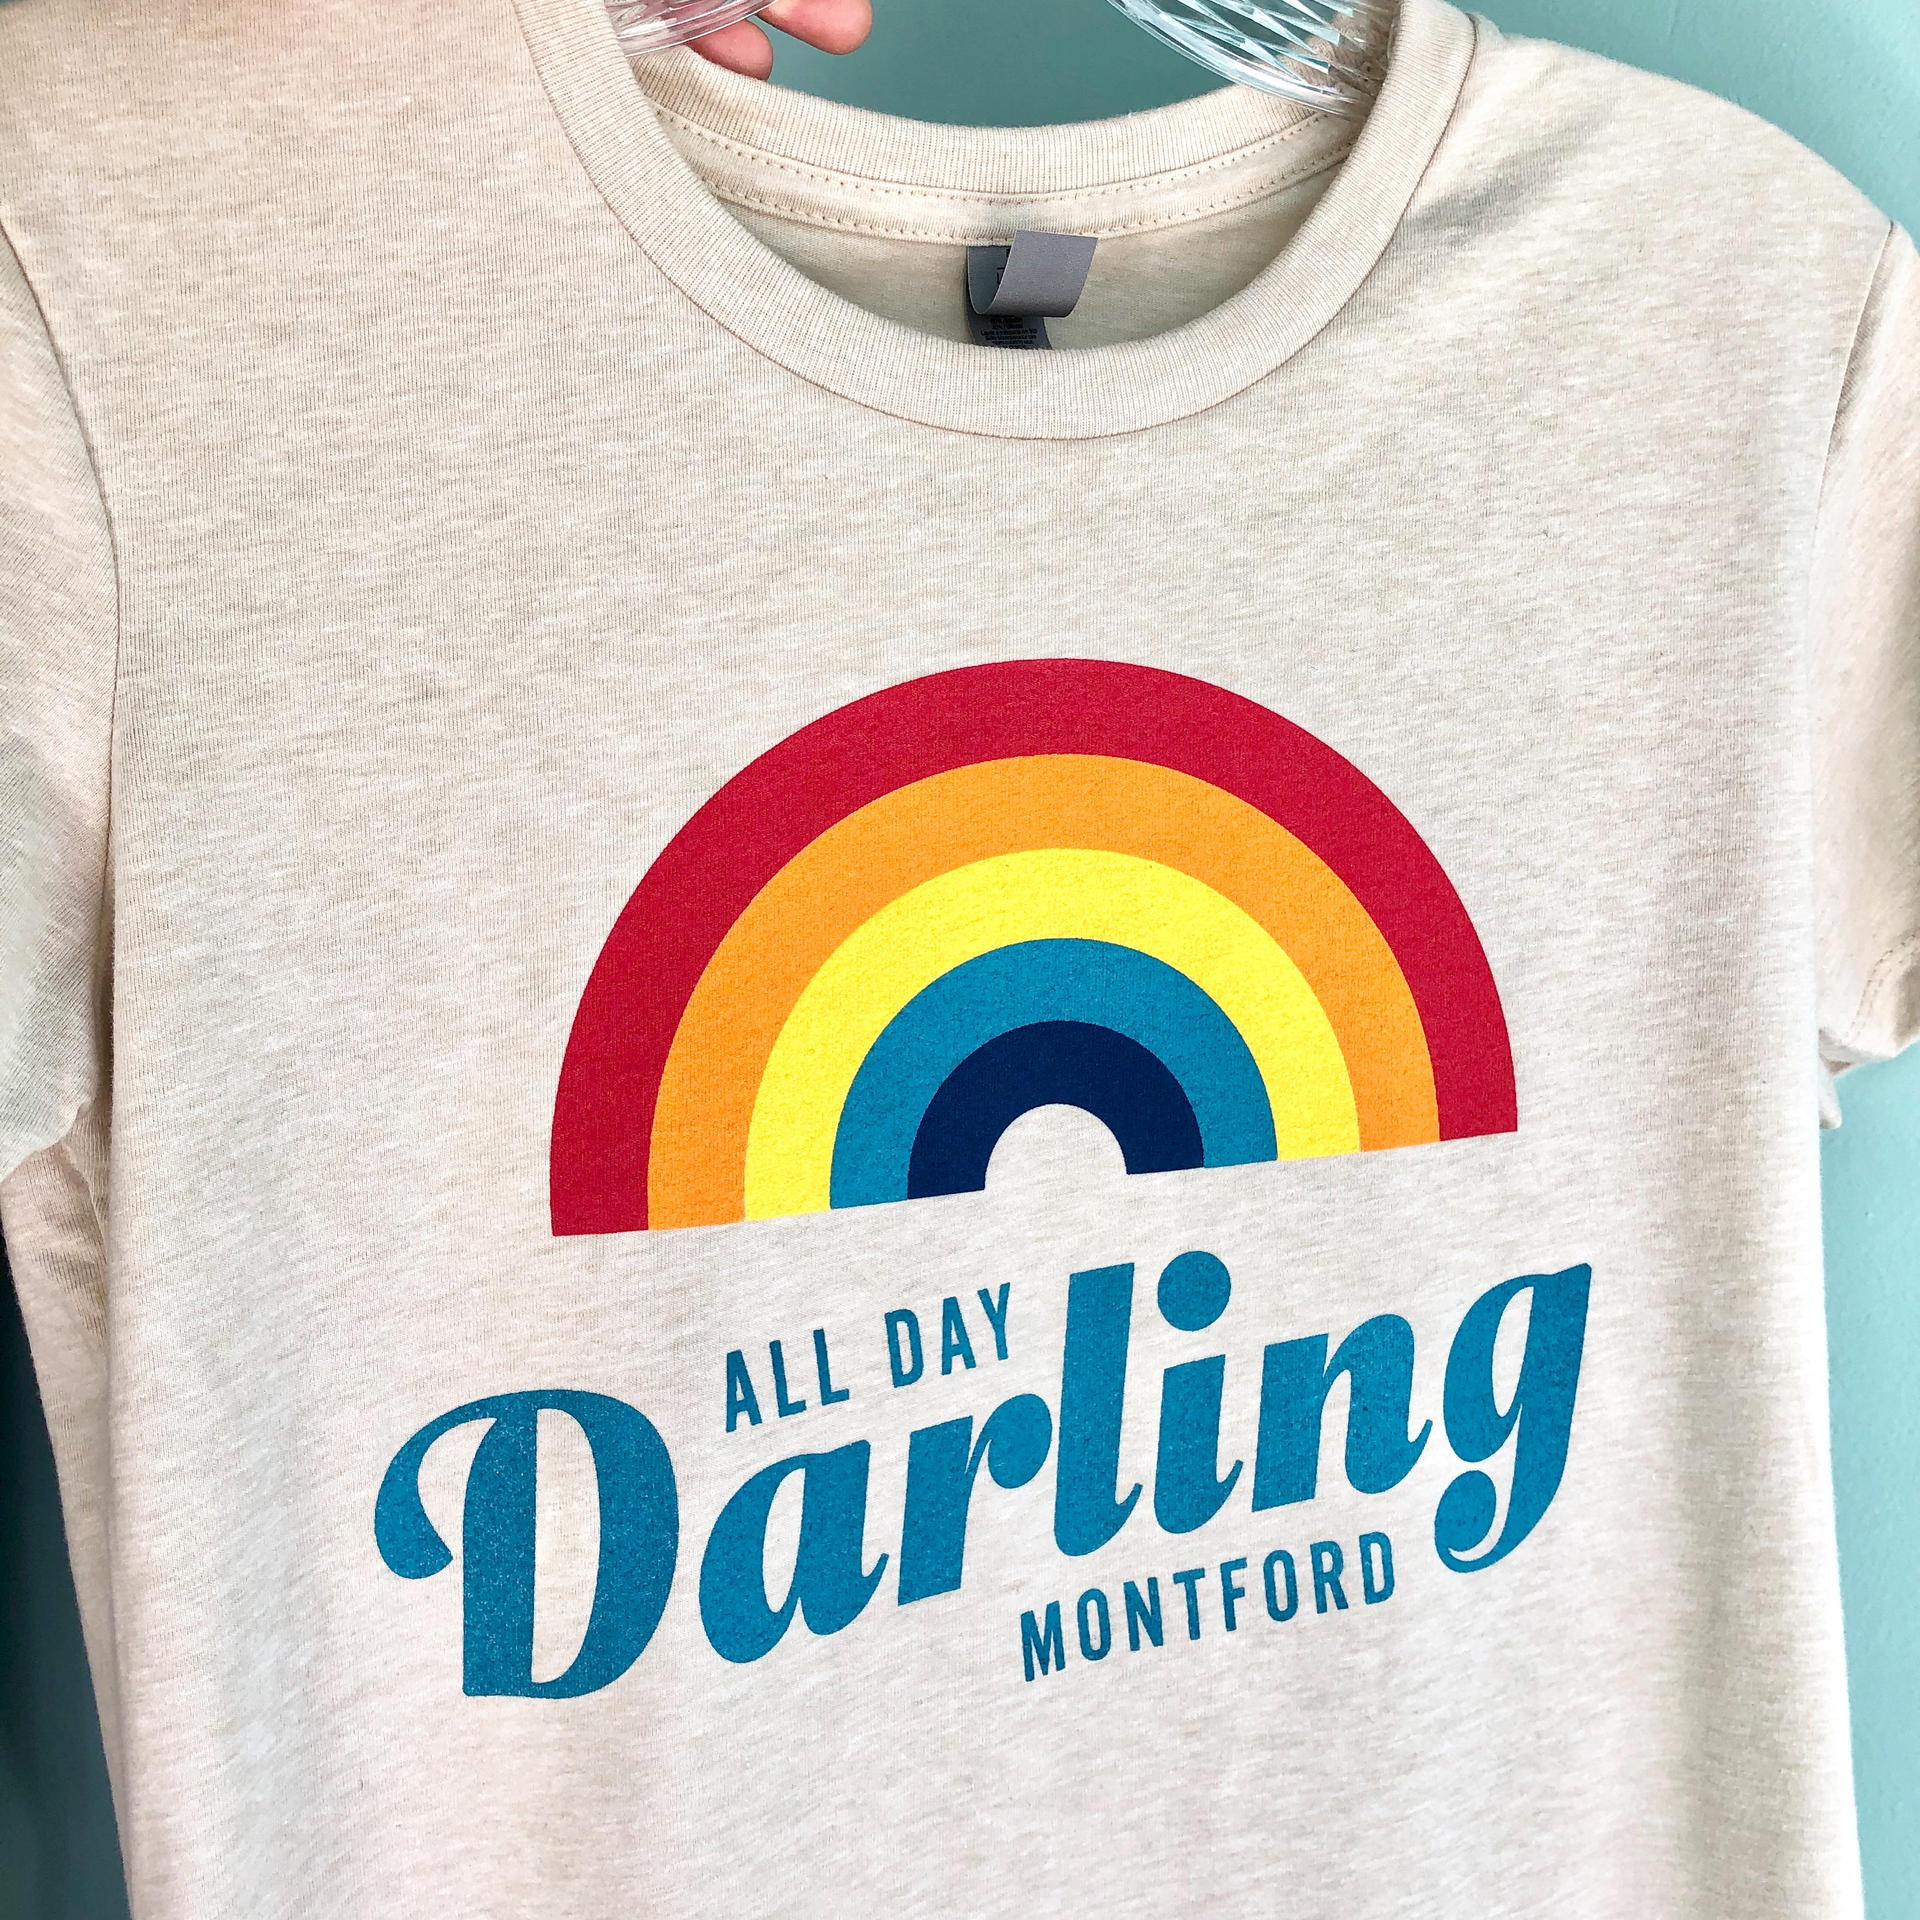 All Day Darling